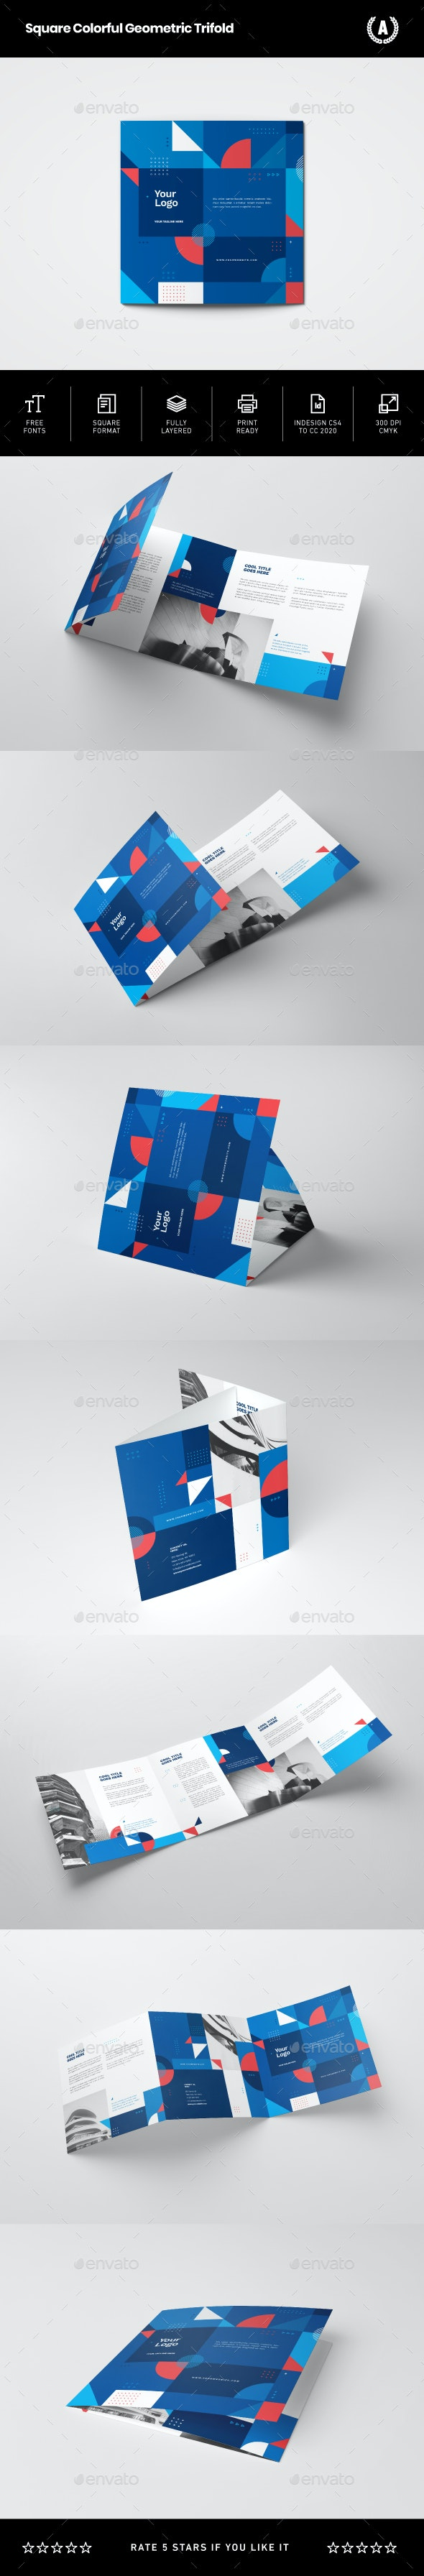 Square Colorful Geometric Trifold - Brochures Print Templates